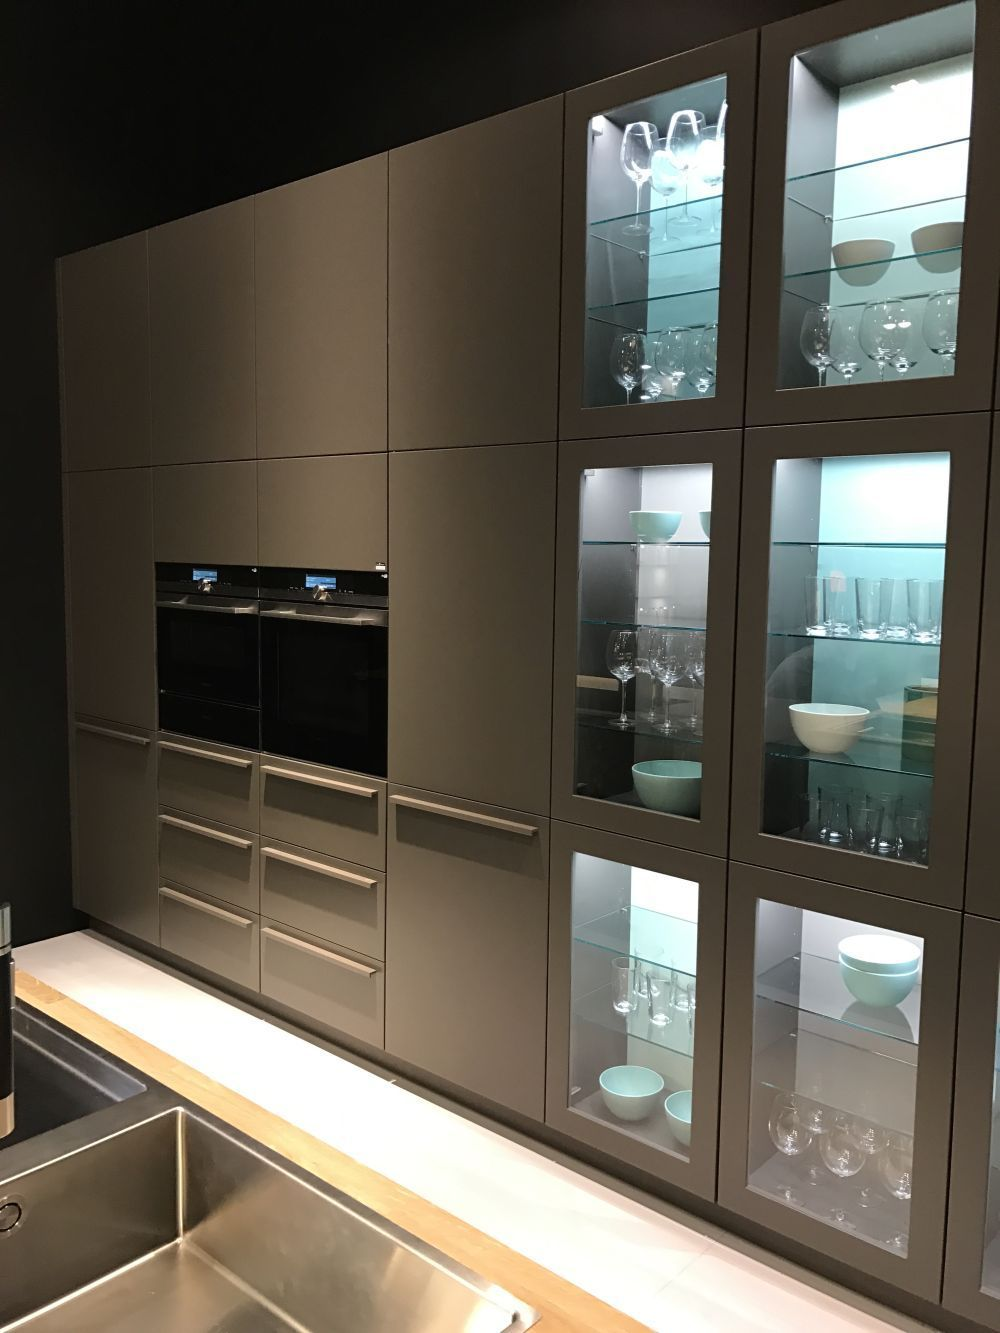 All Glass Cabinet Doors Frosted Glass All The Cabinets Feature Glass Panels Instead O Glass Kitchen Cabinet Doors Kitchen Cabinet Styles Glass Kitchen Cabinets